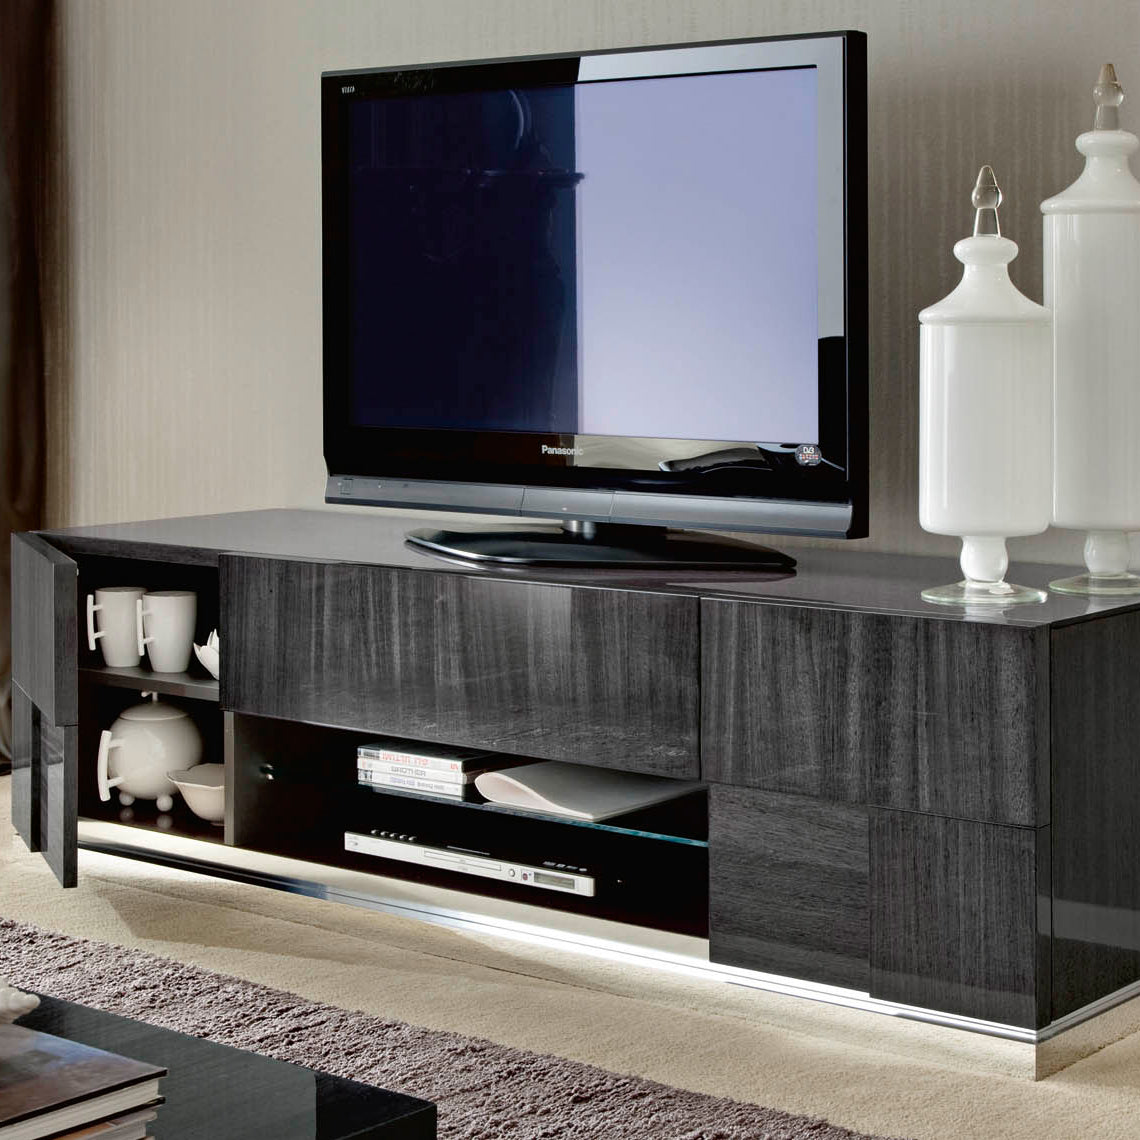 Montecarlo TV unit in a home setting